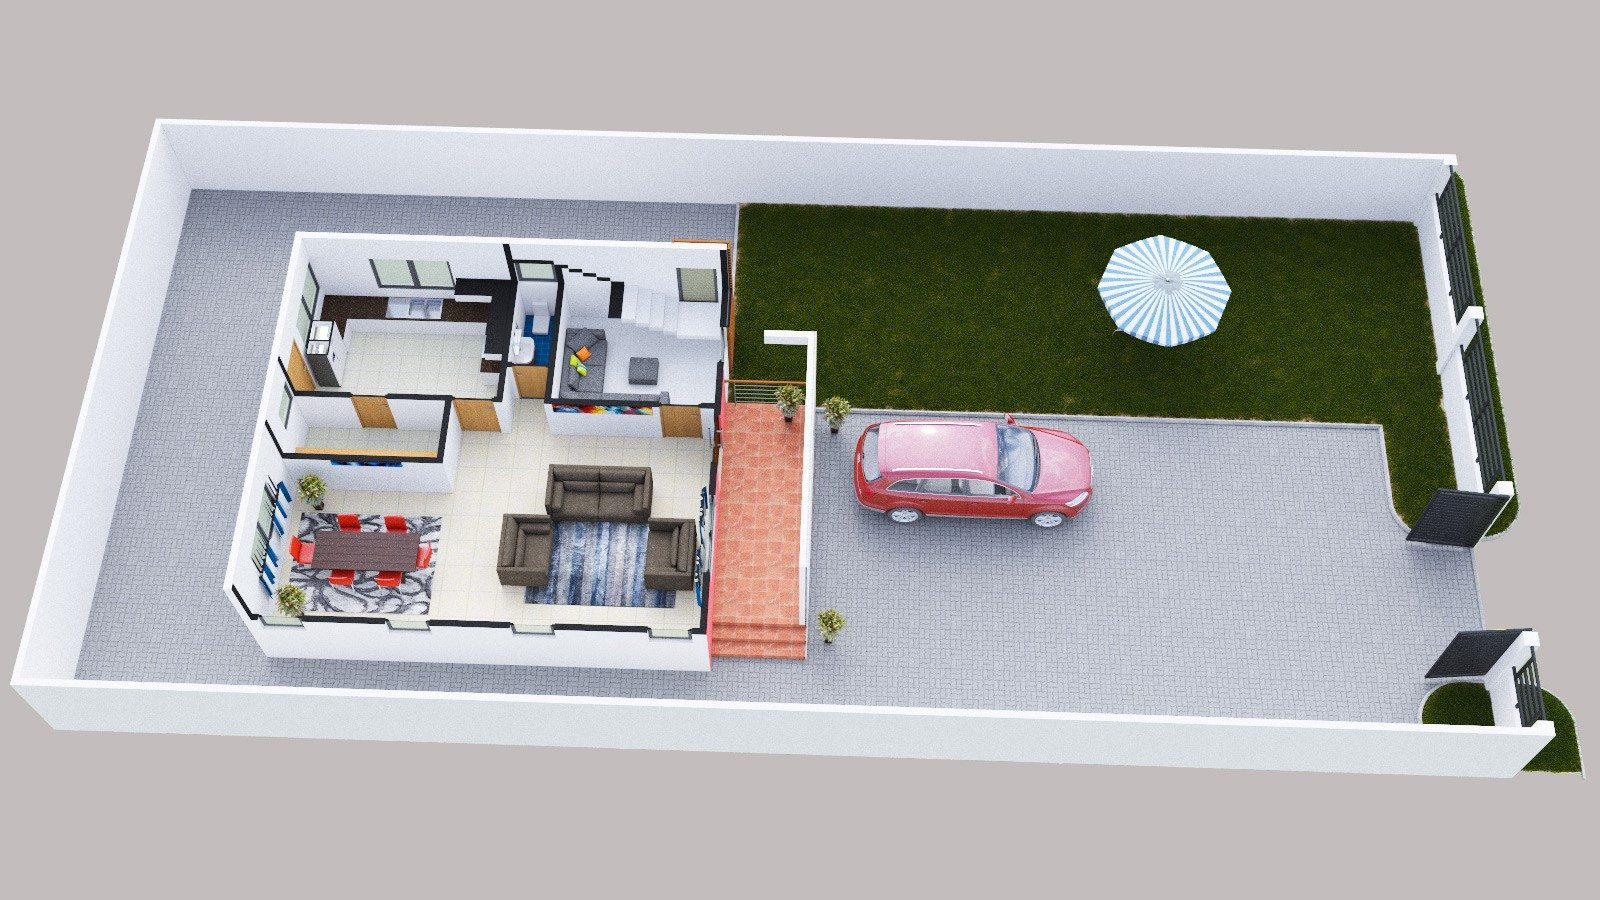 Appolonia City Oxford Barton - First Level plan